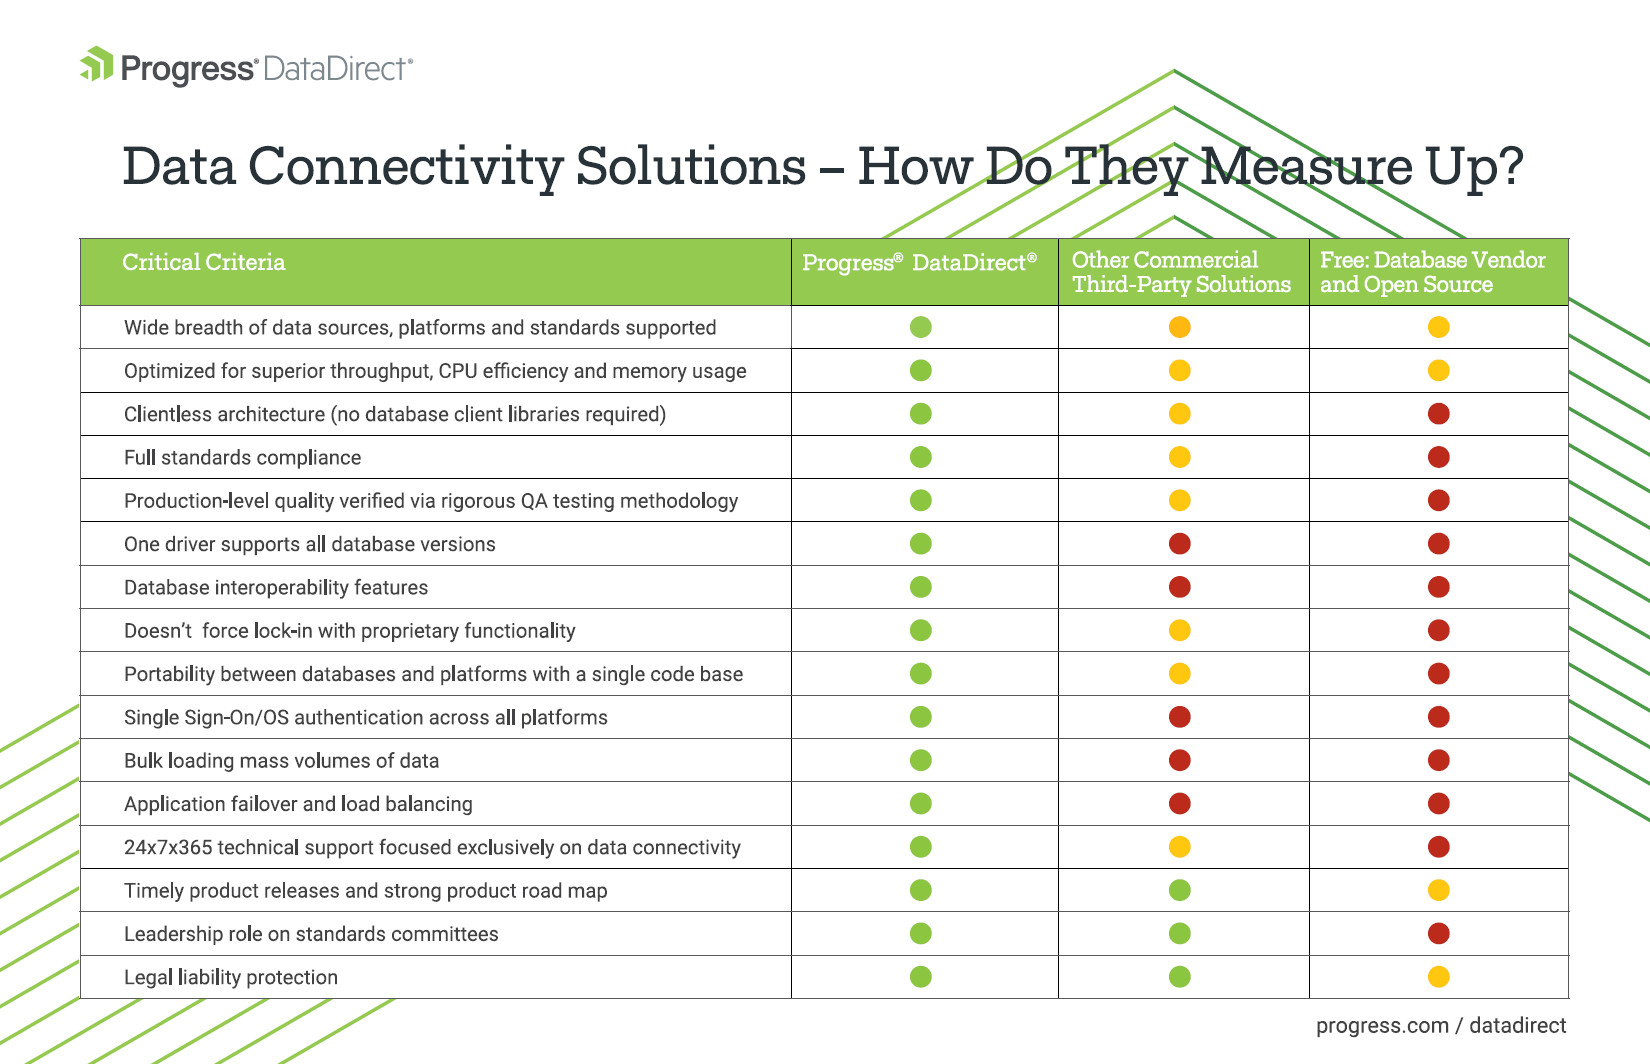 Data Connectivity Solutions Comparison